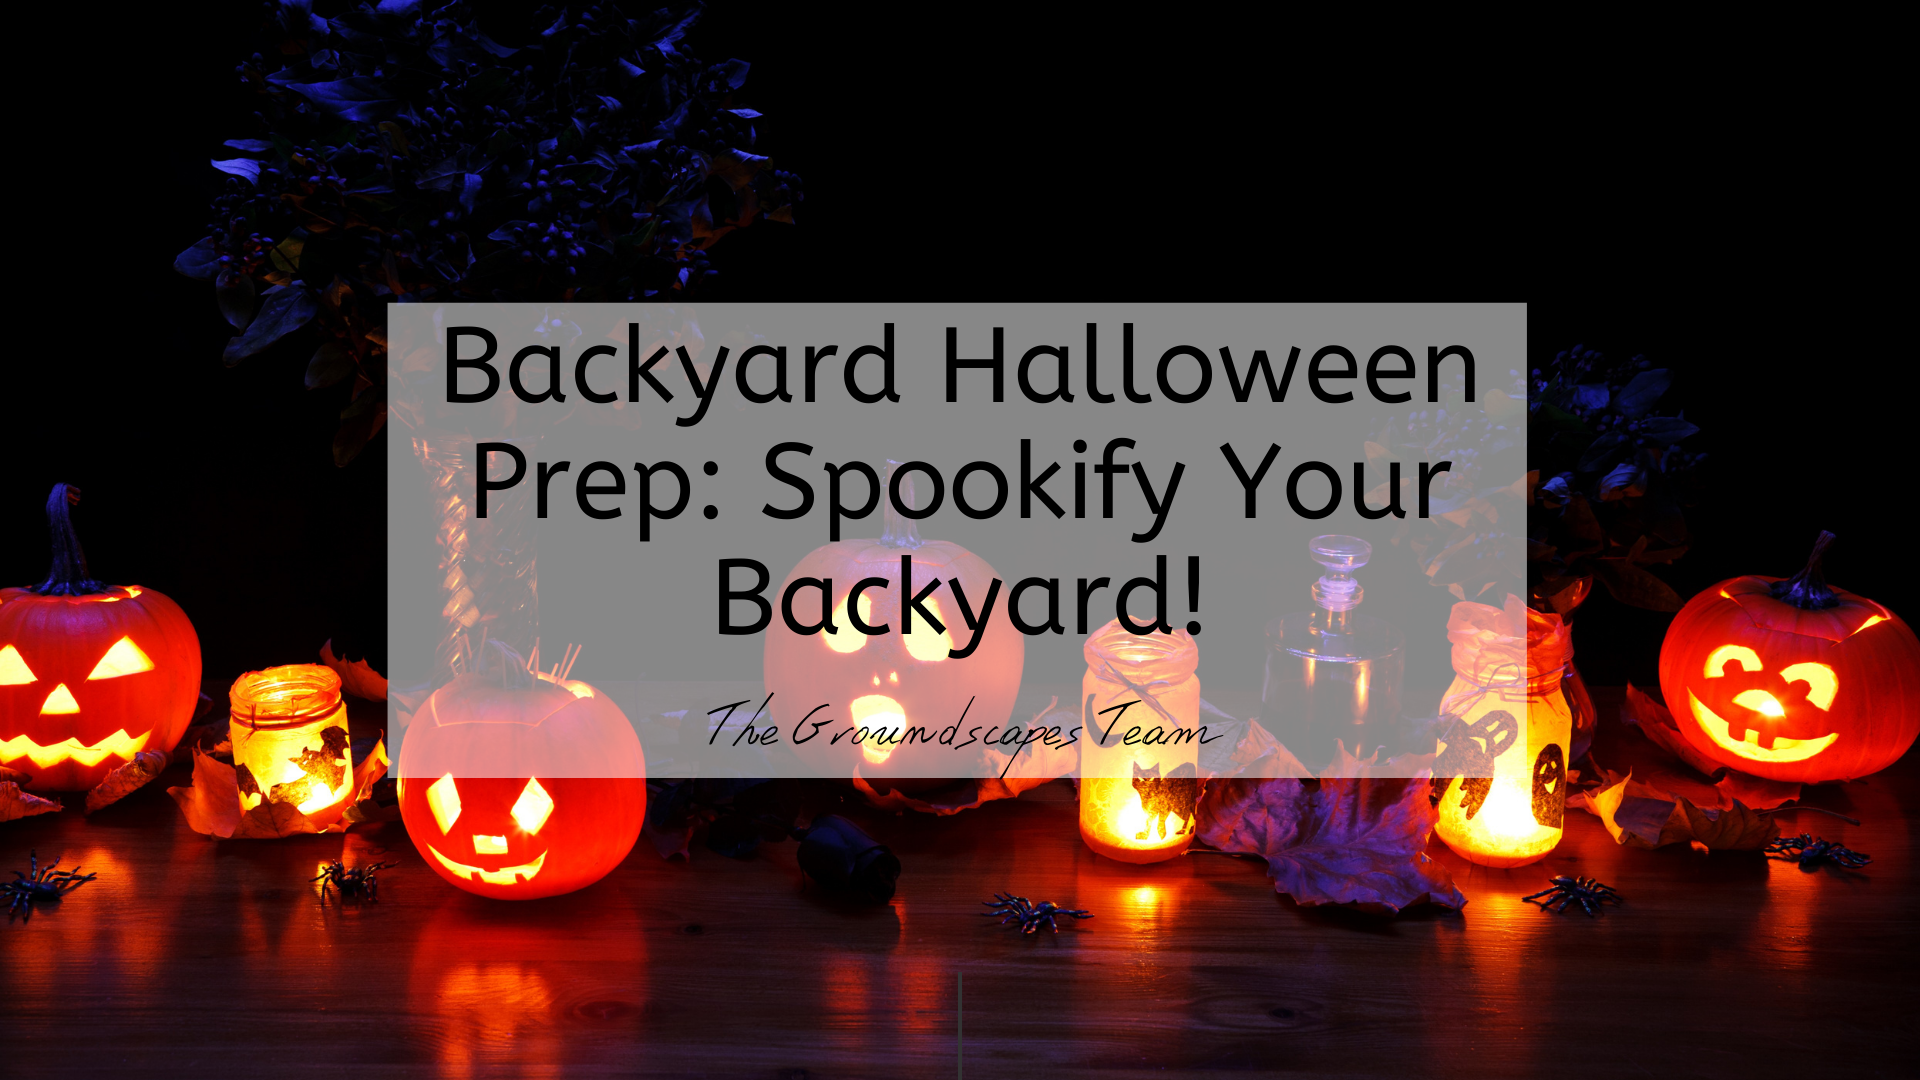 Backyard Halloween Prep: Spookify Your Backyard!